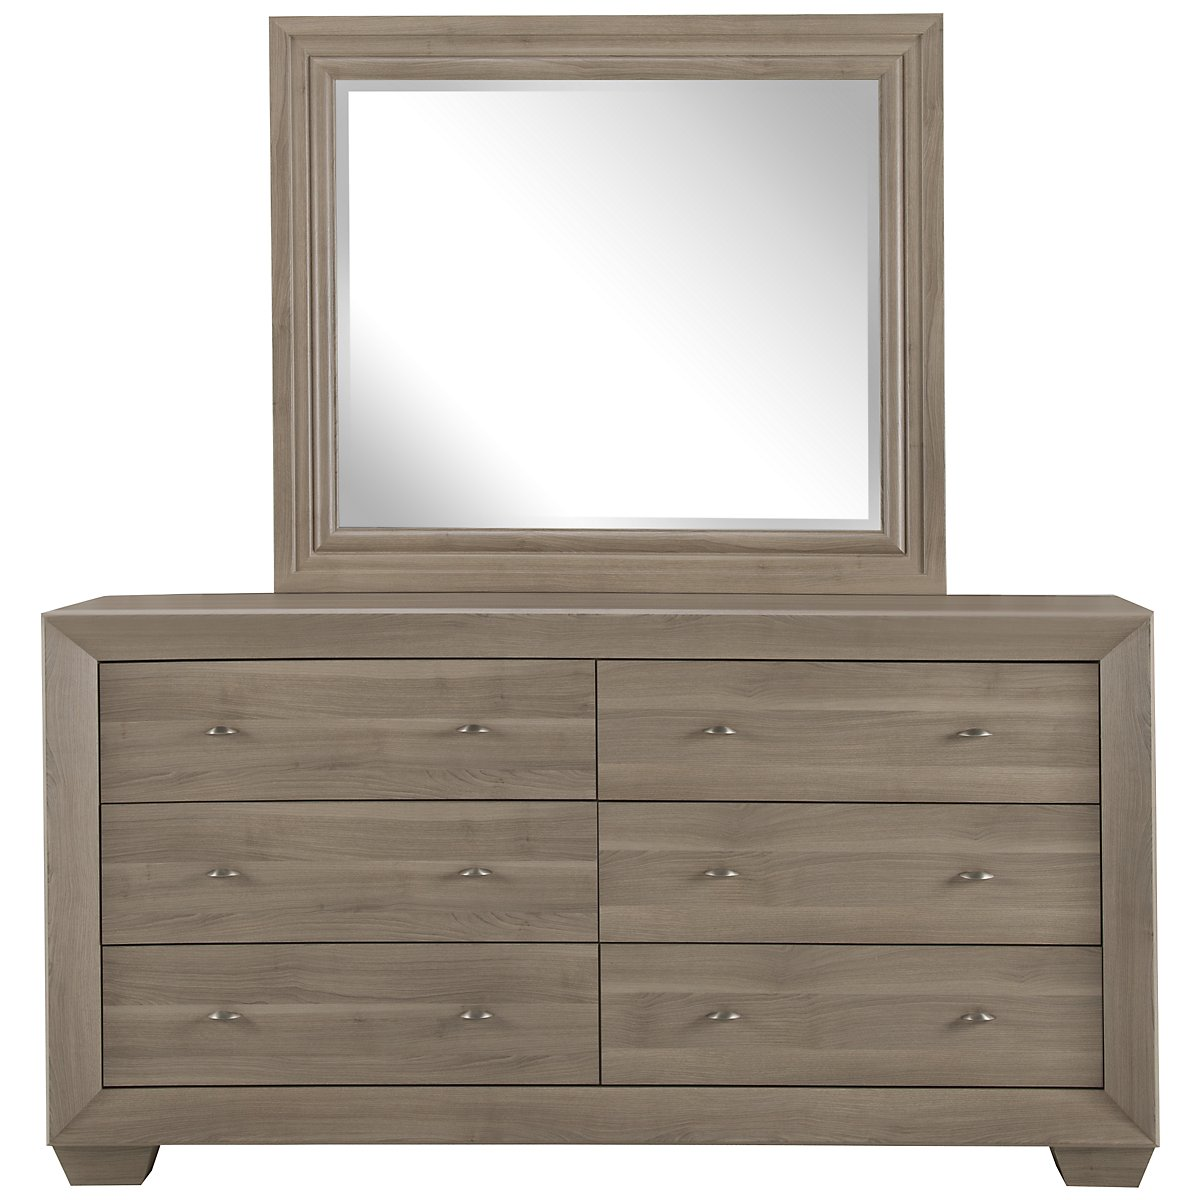 Adele2 Light Tone Dresser   Mirror. City Furniture   Bedroom Furniture   Dressers  Mirrors  Chests